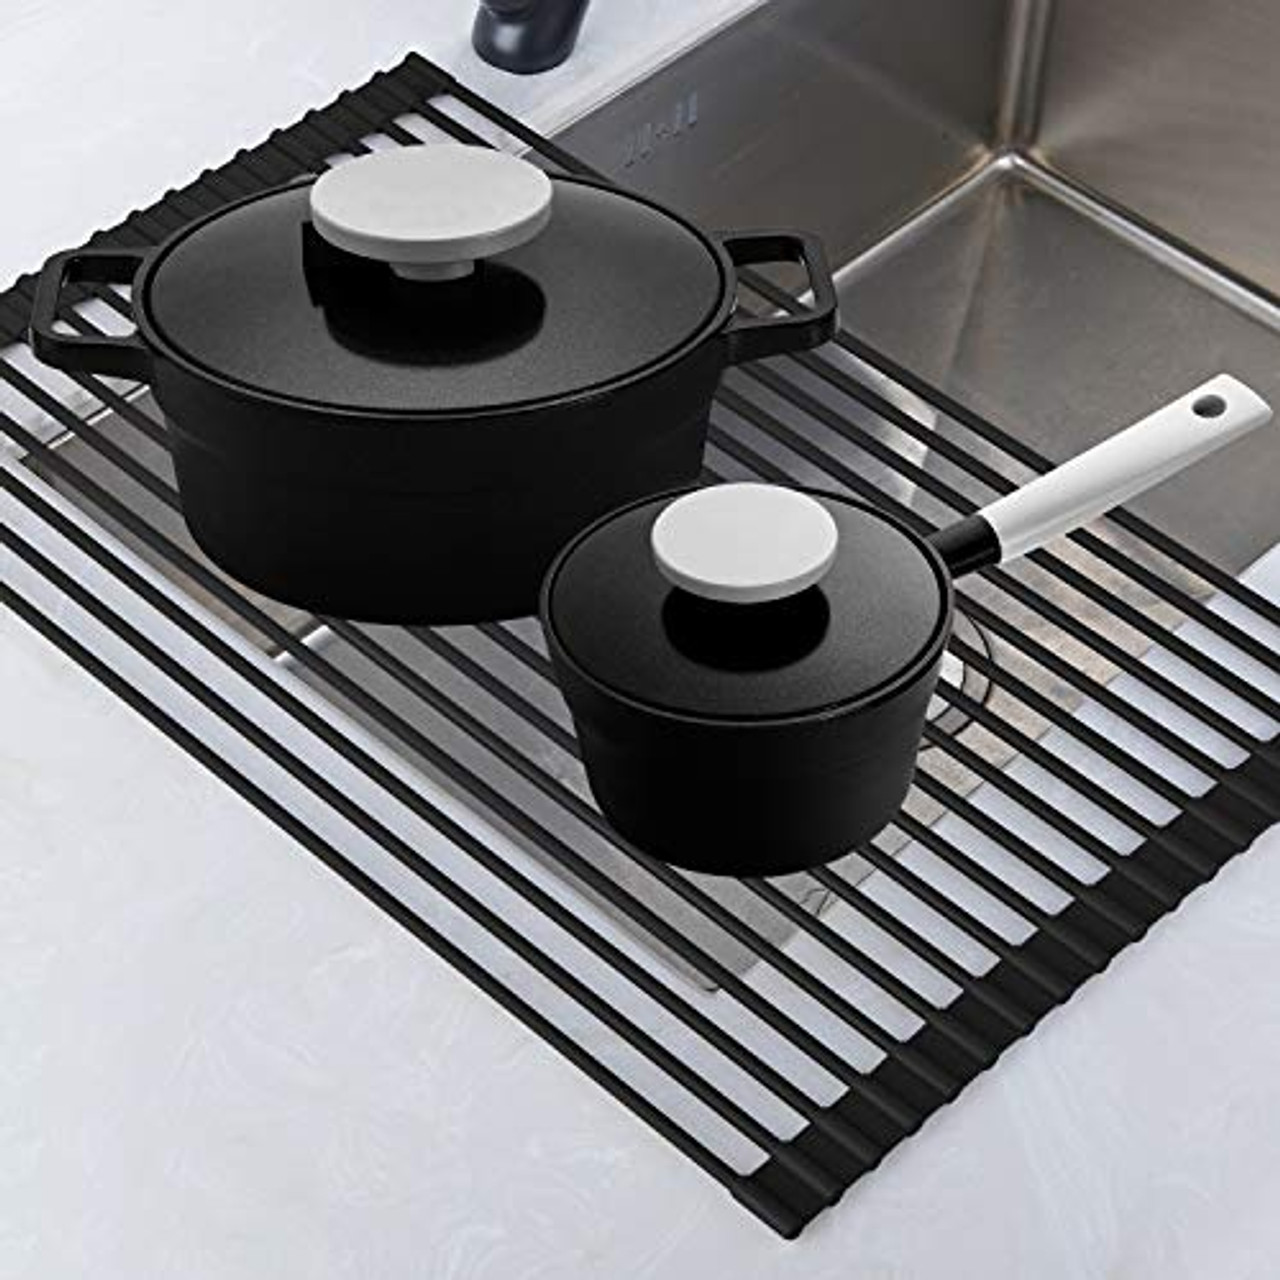 Roll Up Rack Collapsible Dish Drying Rack In The Sink Drying Mat Multipurpose Dish Drainer Rv Dish Drying Rack Fruits And Vegetable Rinser Durable Silicone Covered Stainless Steel Black Teci Tcf001b Toyboxtech